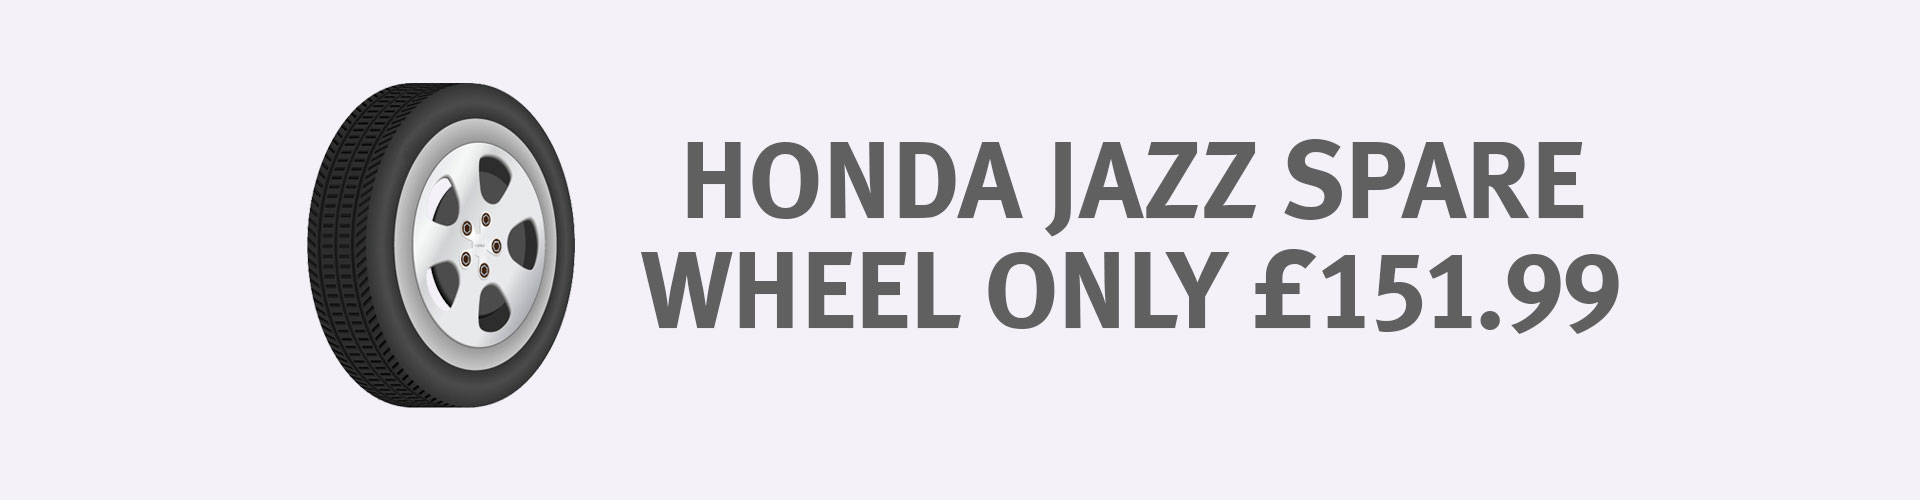 Honda Jazz Spare Wheel - Only £151.99